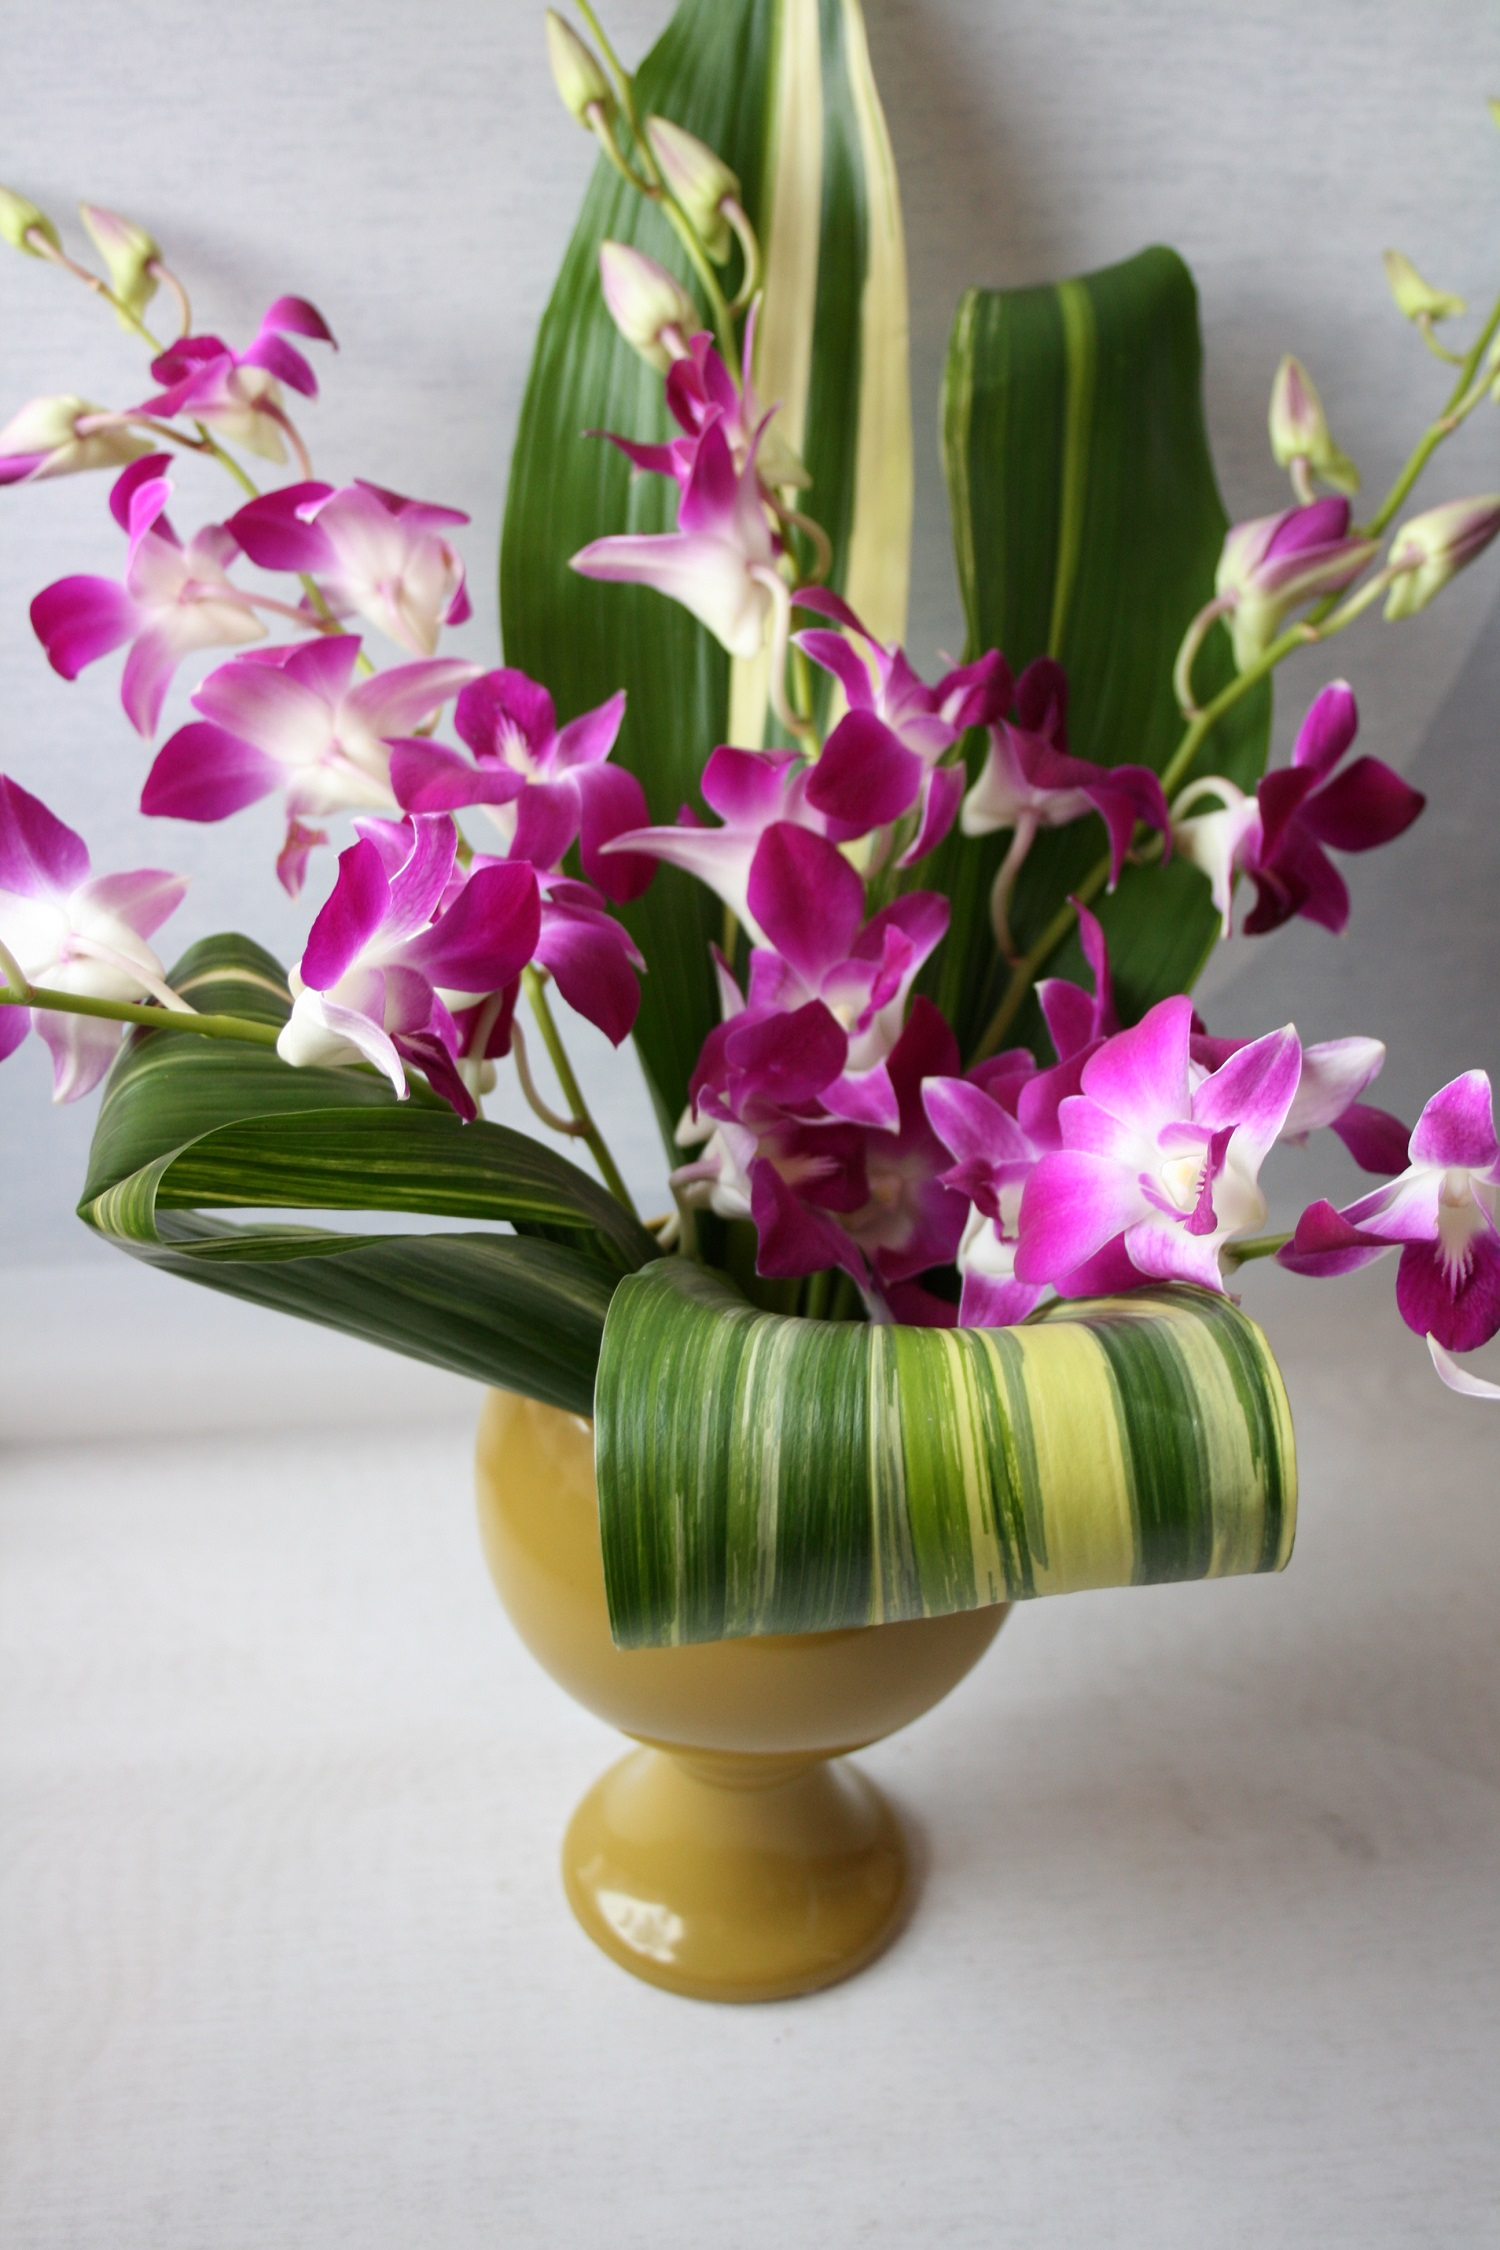 Tropical Flower Arrangement Unique Flower Arrangement Modern Flower Arrangement Modern Flower Delivery Minneapolis Purple Flowers Modern Modern Design Flower Delivery Orchids Looped Leaves Tropical Arrangement Unique Arrangement Luna Vinca